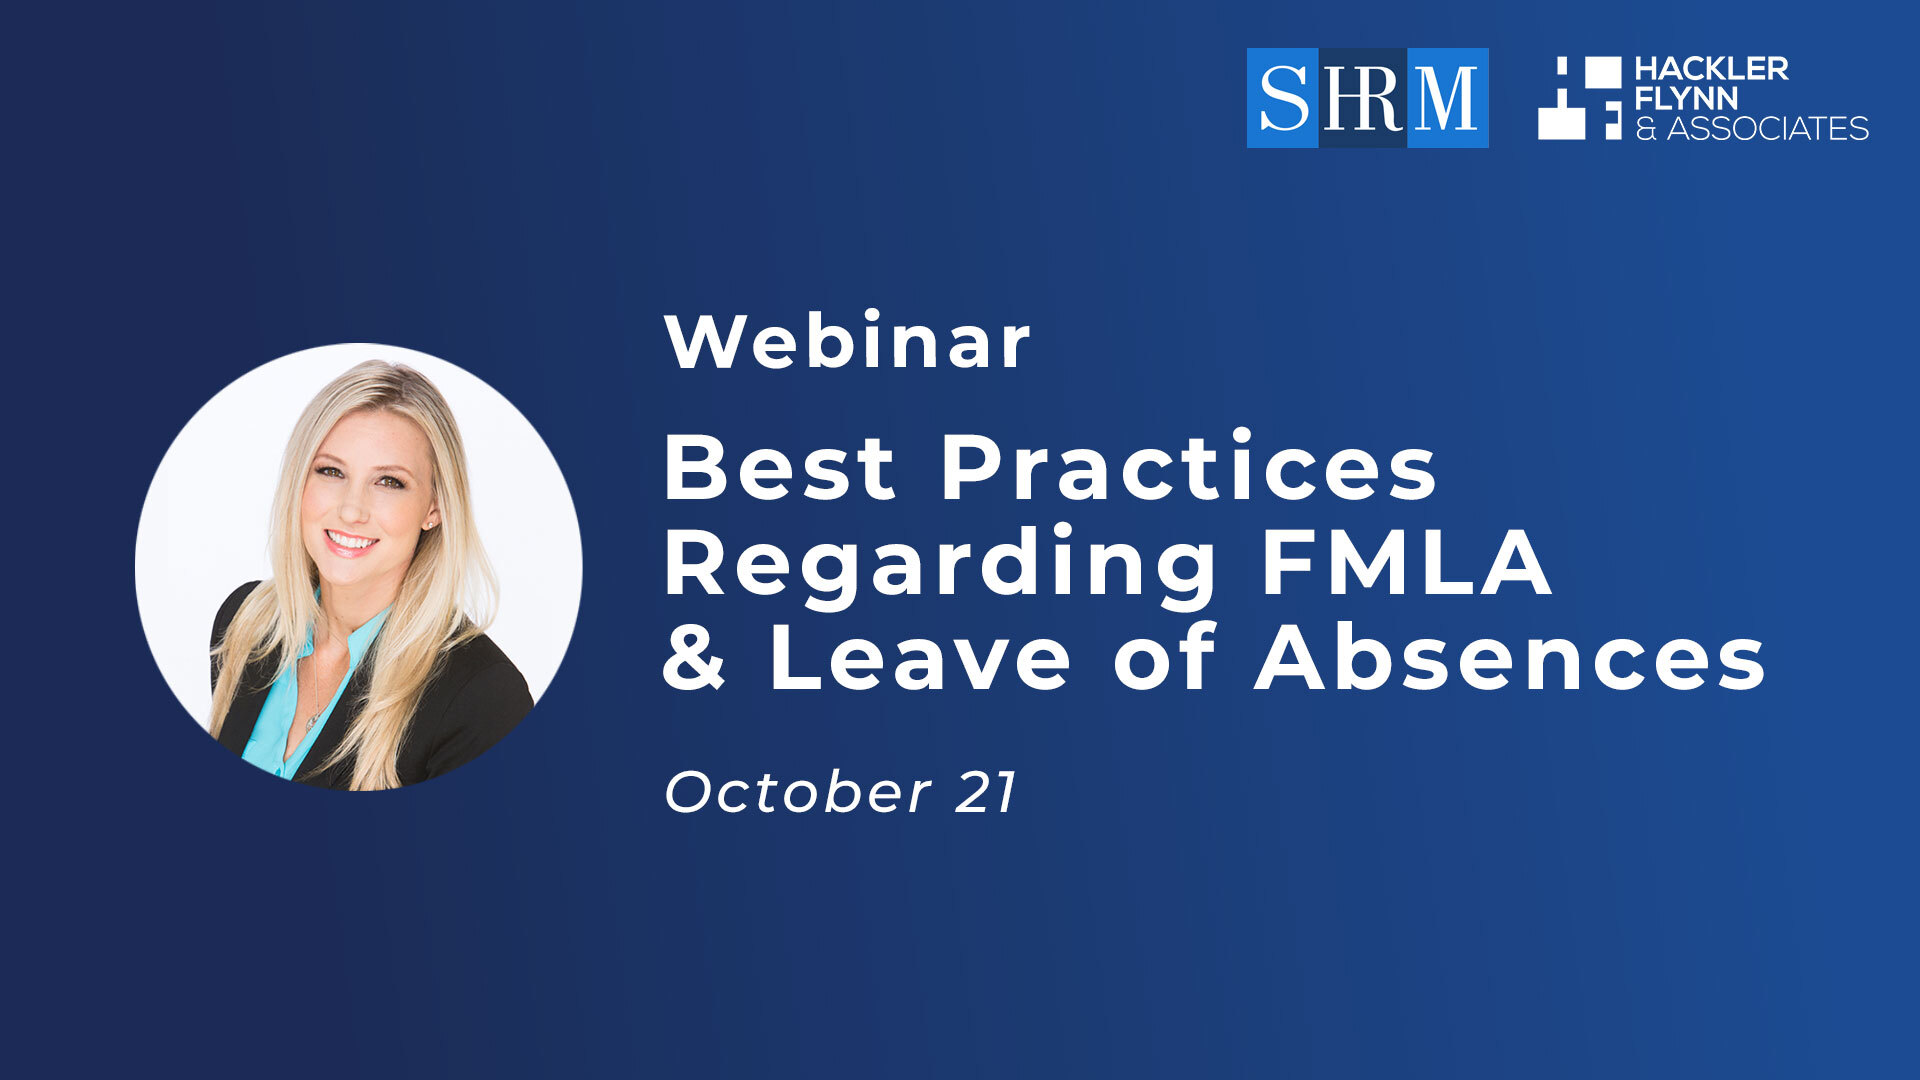 Best Practices Regarding FMLA and Leave of Absences